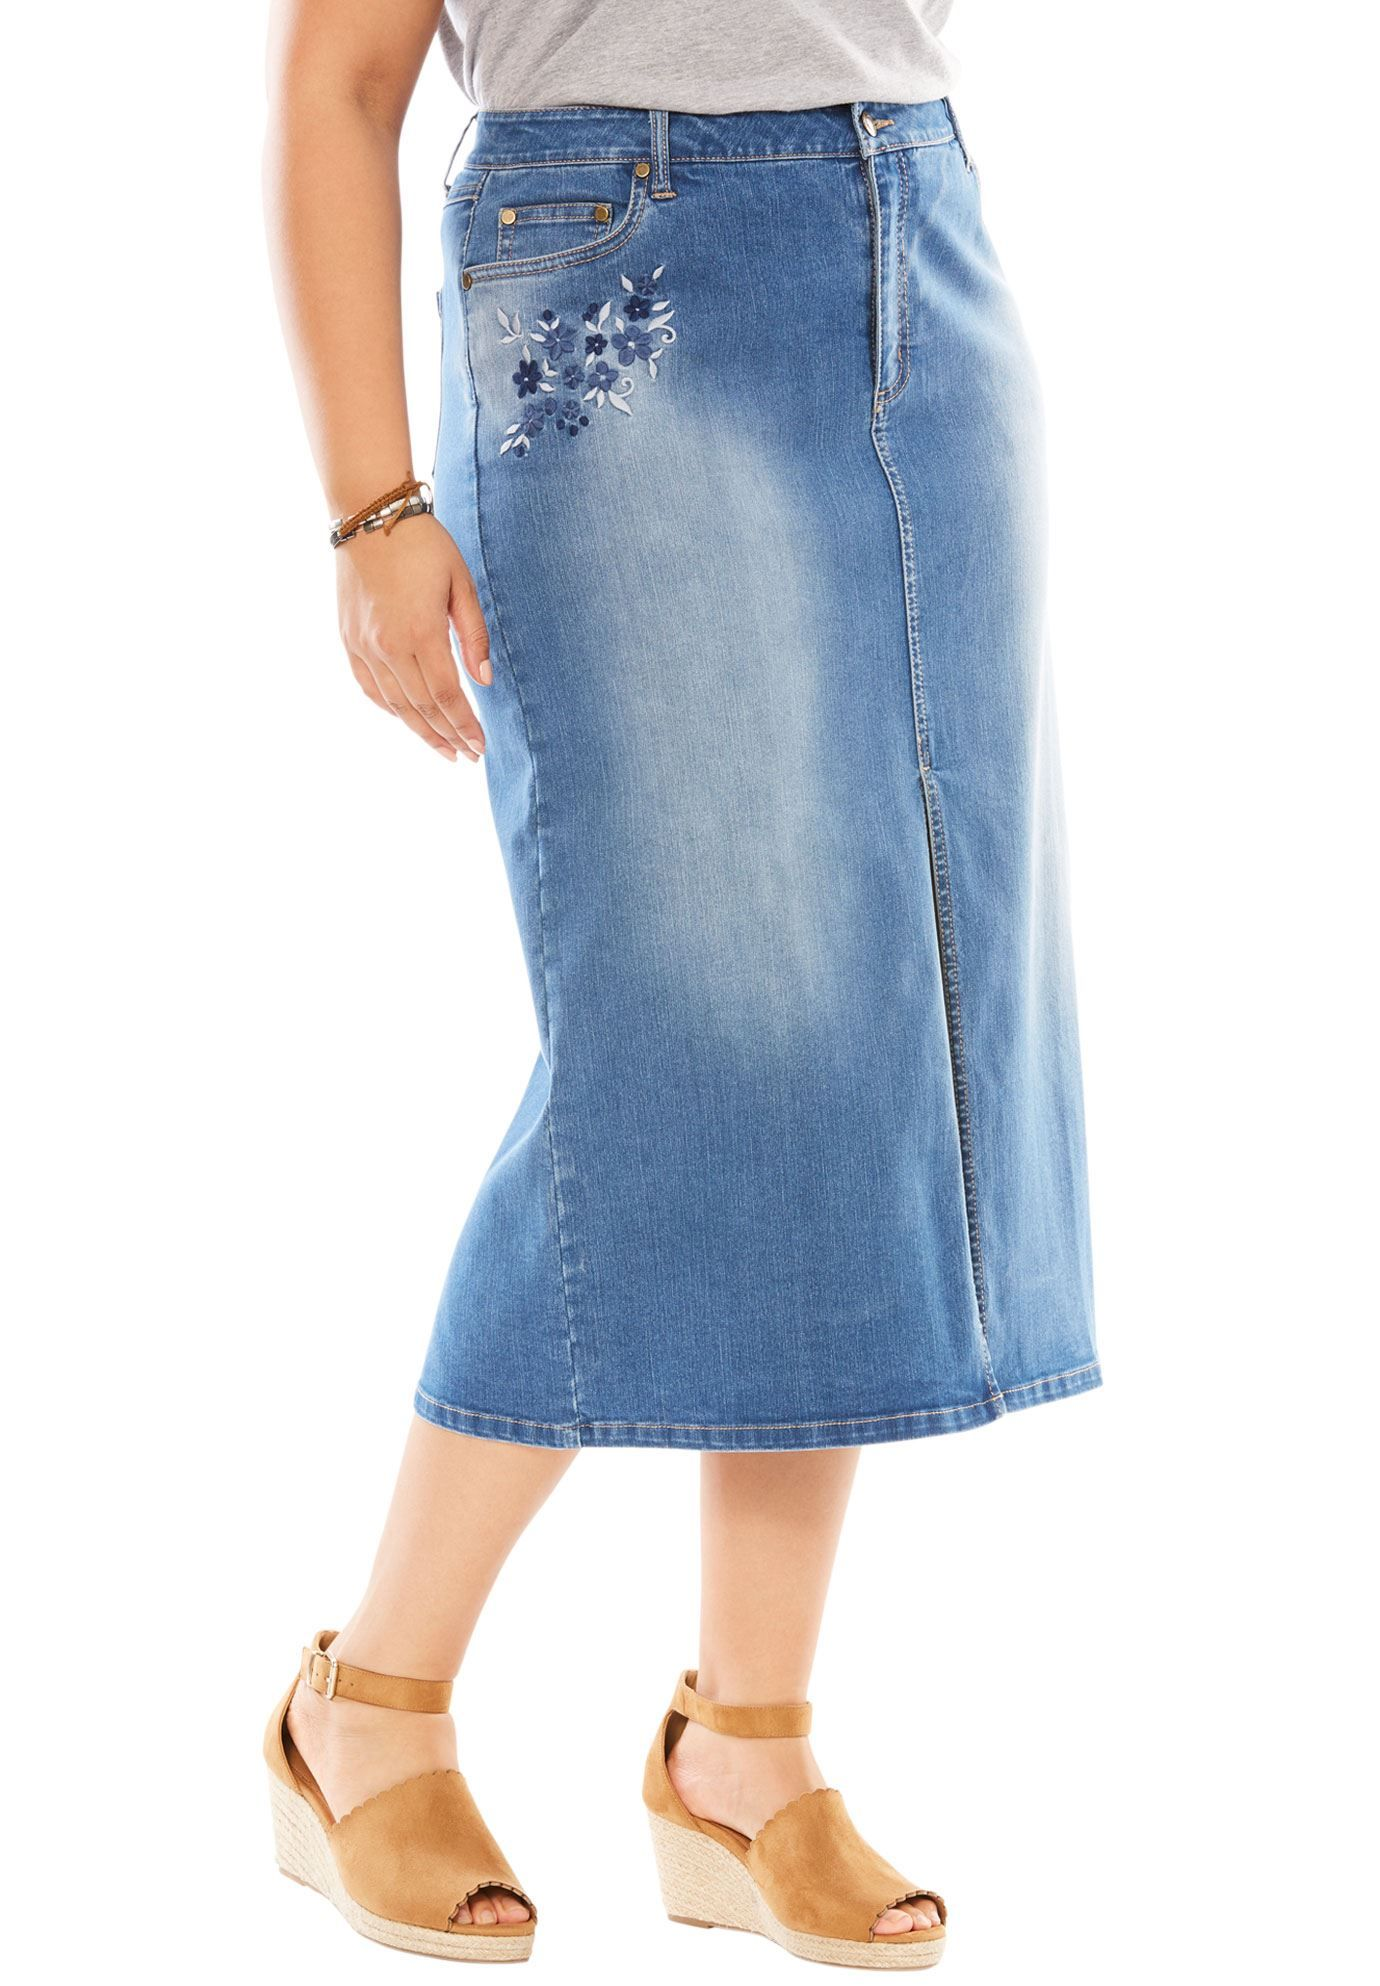 3b81319a73ad Petite Stretch Jean Skirt - Women's Plus Size Clothing | Products ...